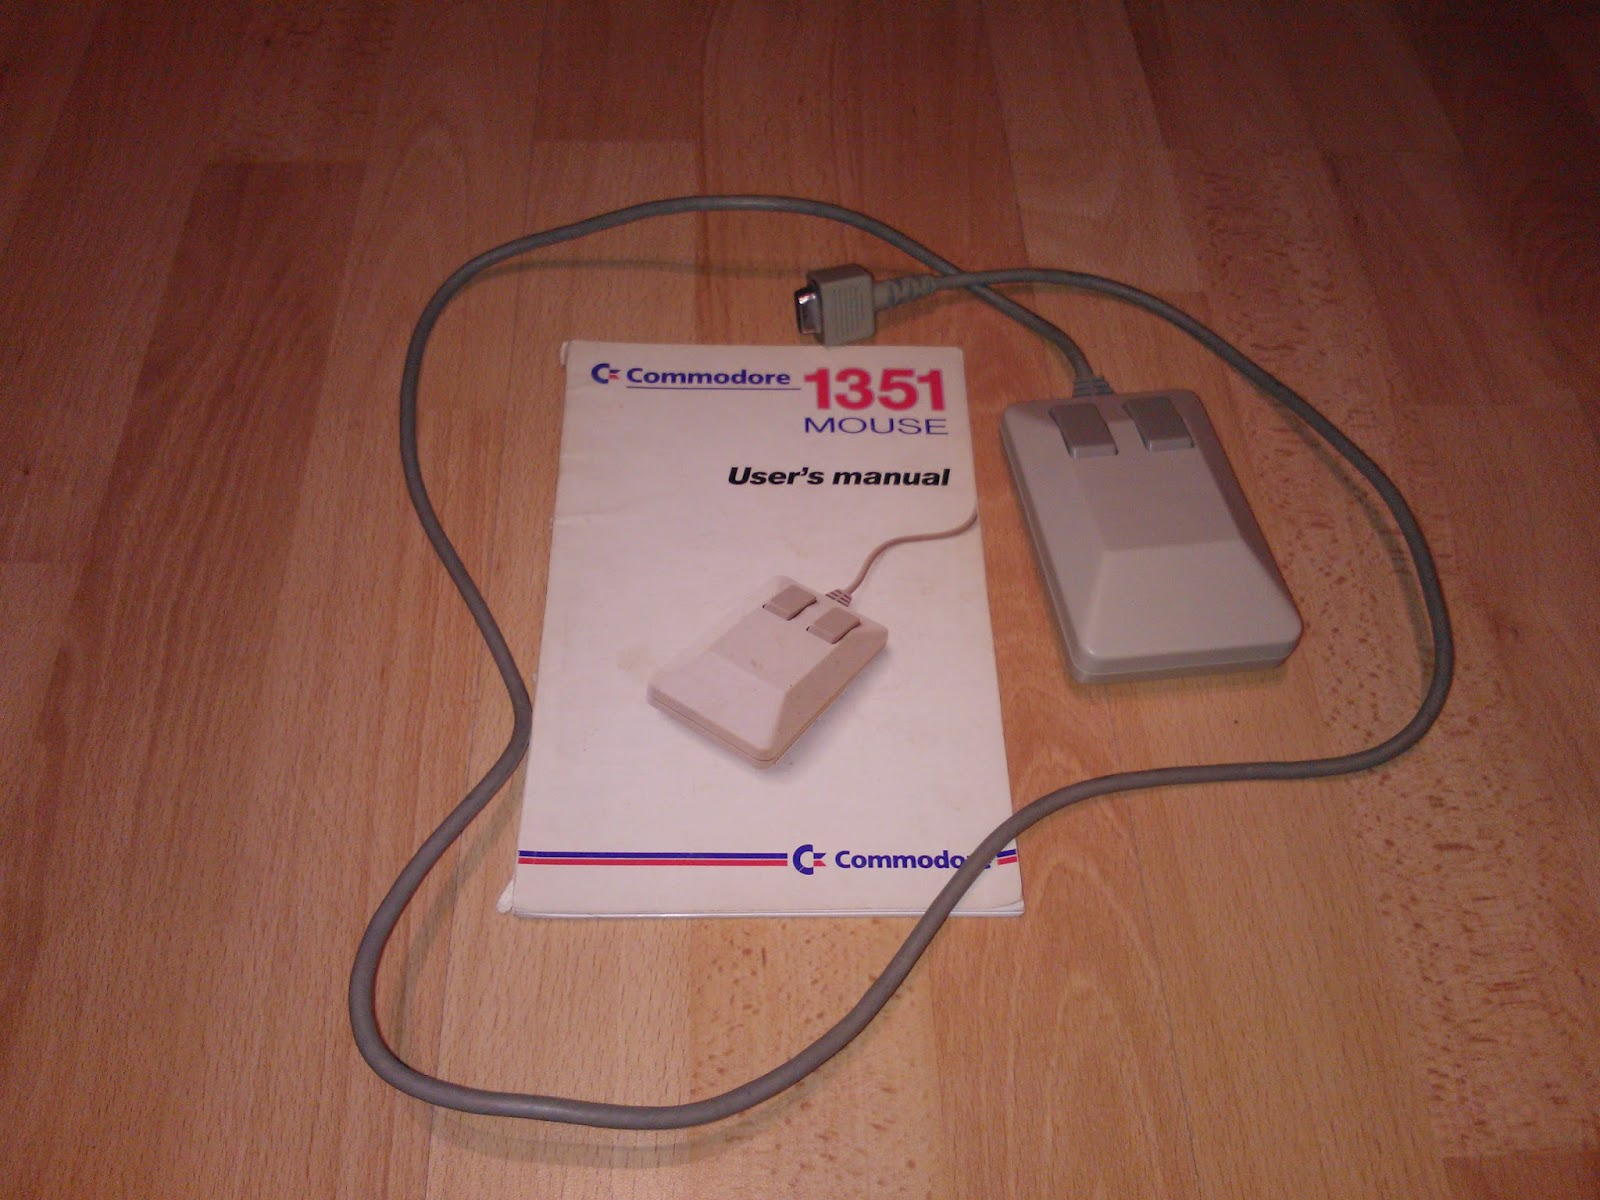 I have a Commodore 1351 mouse bought ages ago, for chips. It wasn't  functioning properly, since the horizontal movement didn't work.